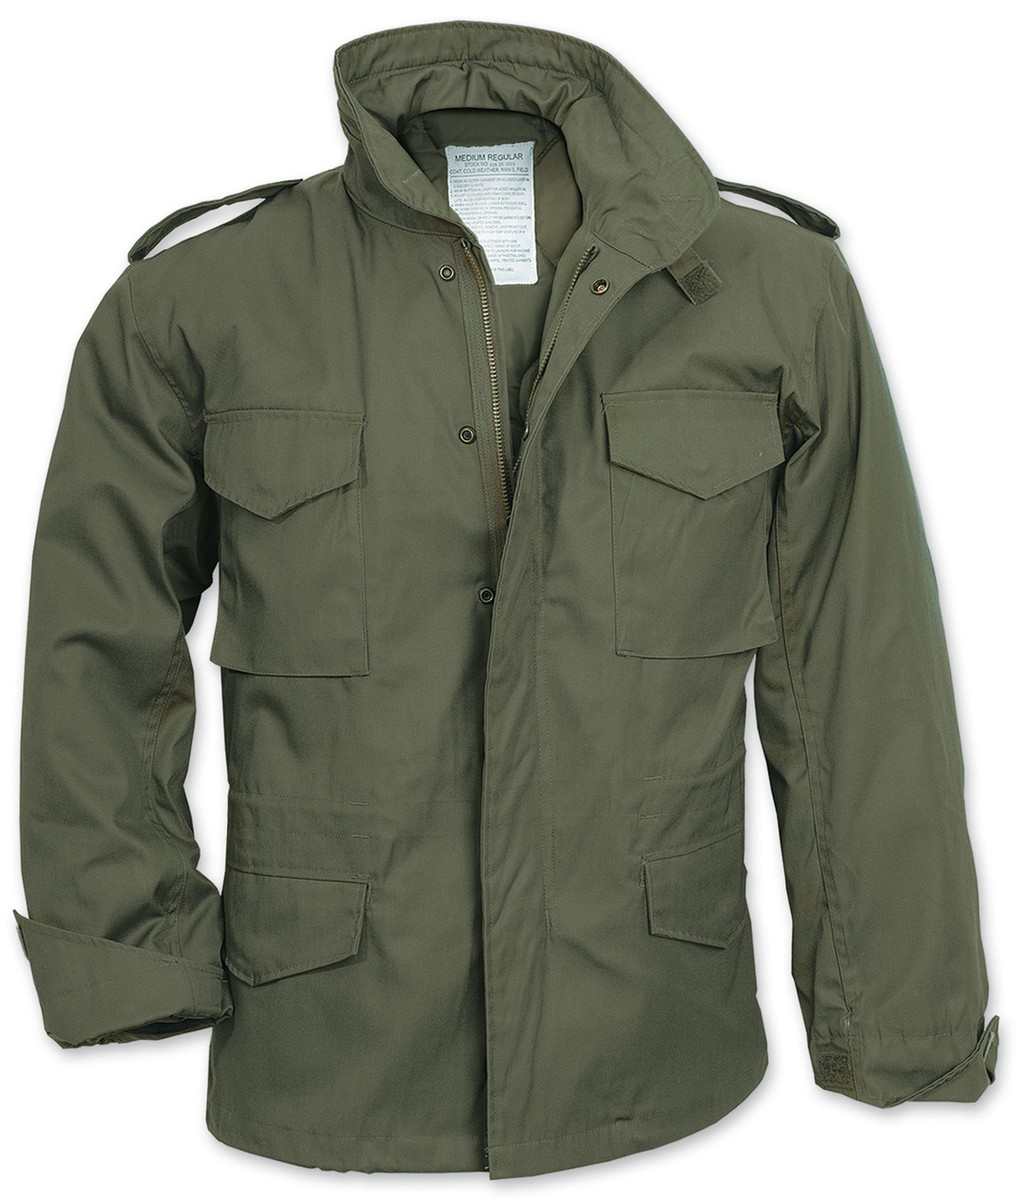 bunda zimní - FIELDJACKET M 65 - SURPLUS - 20-3501-91